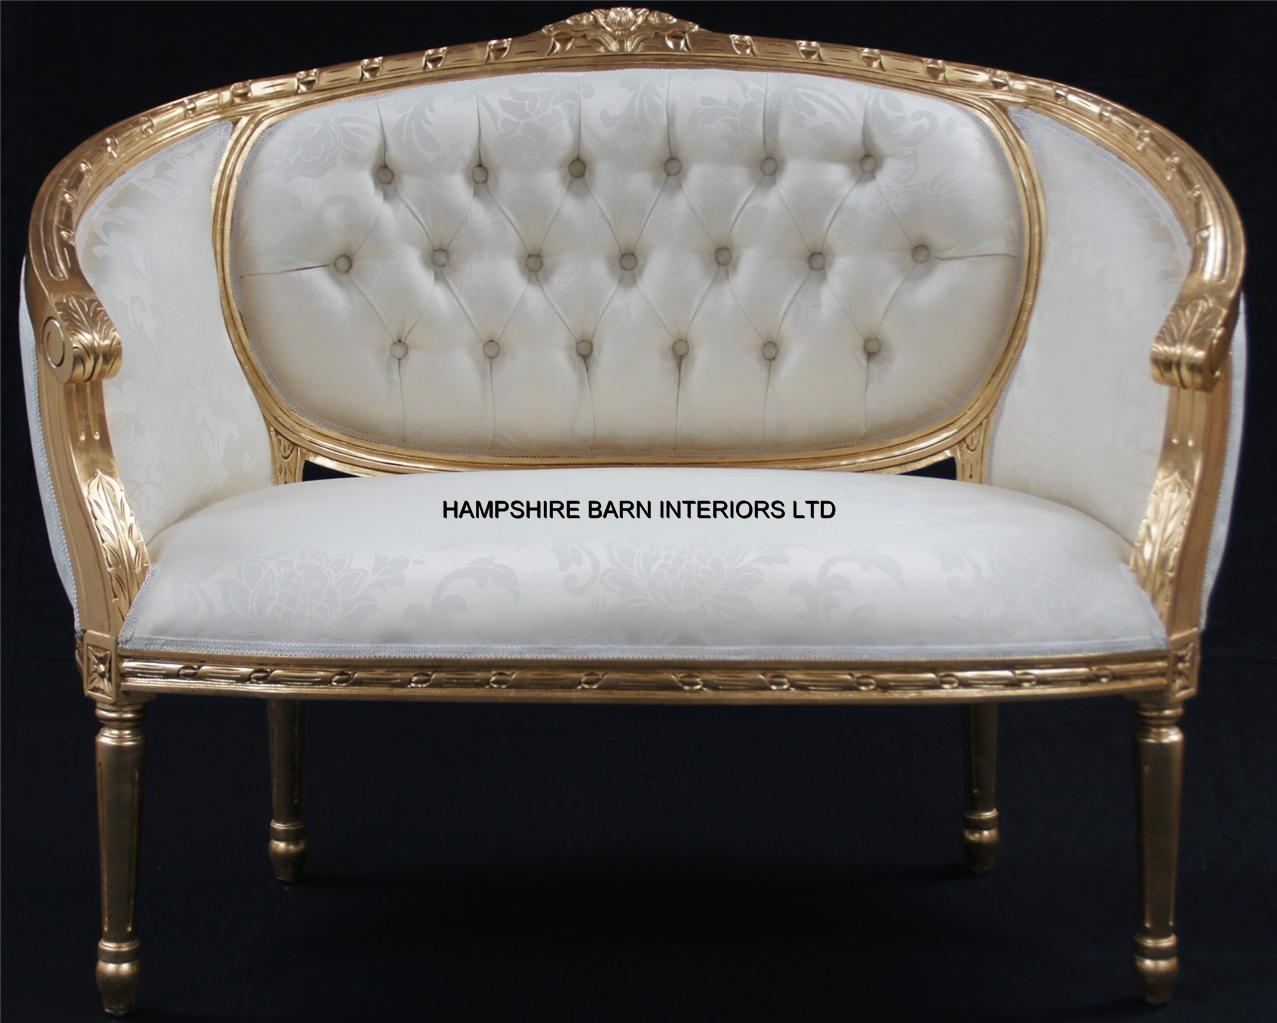 A Double Ended Gold Ivory French Louis Ornate Chaise